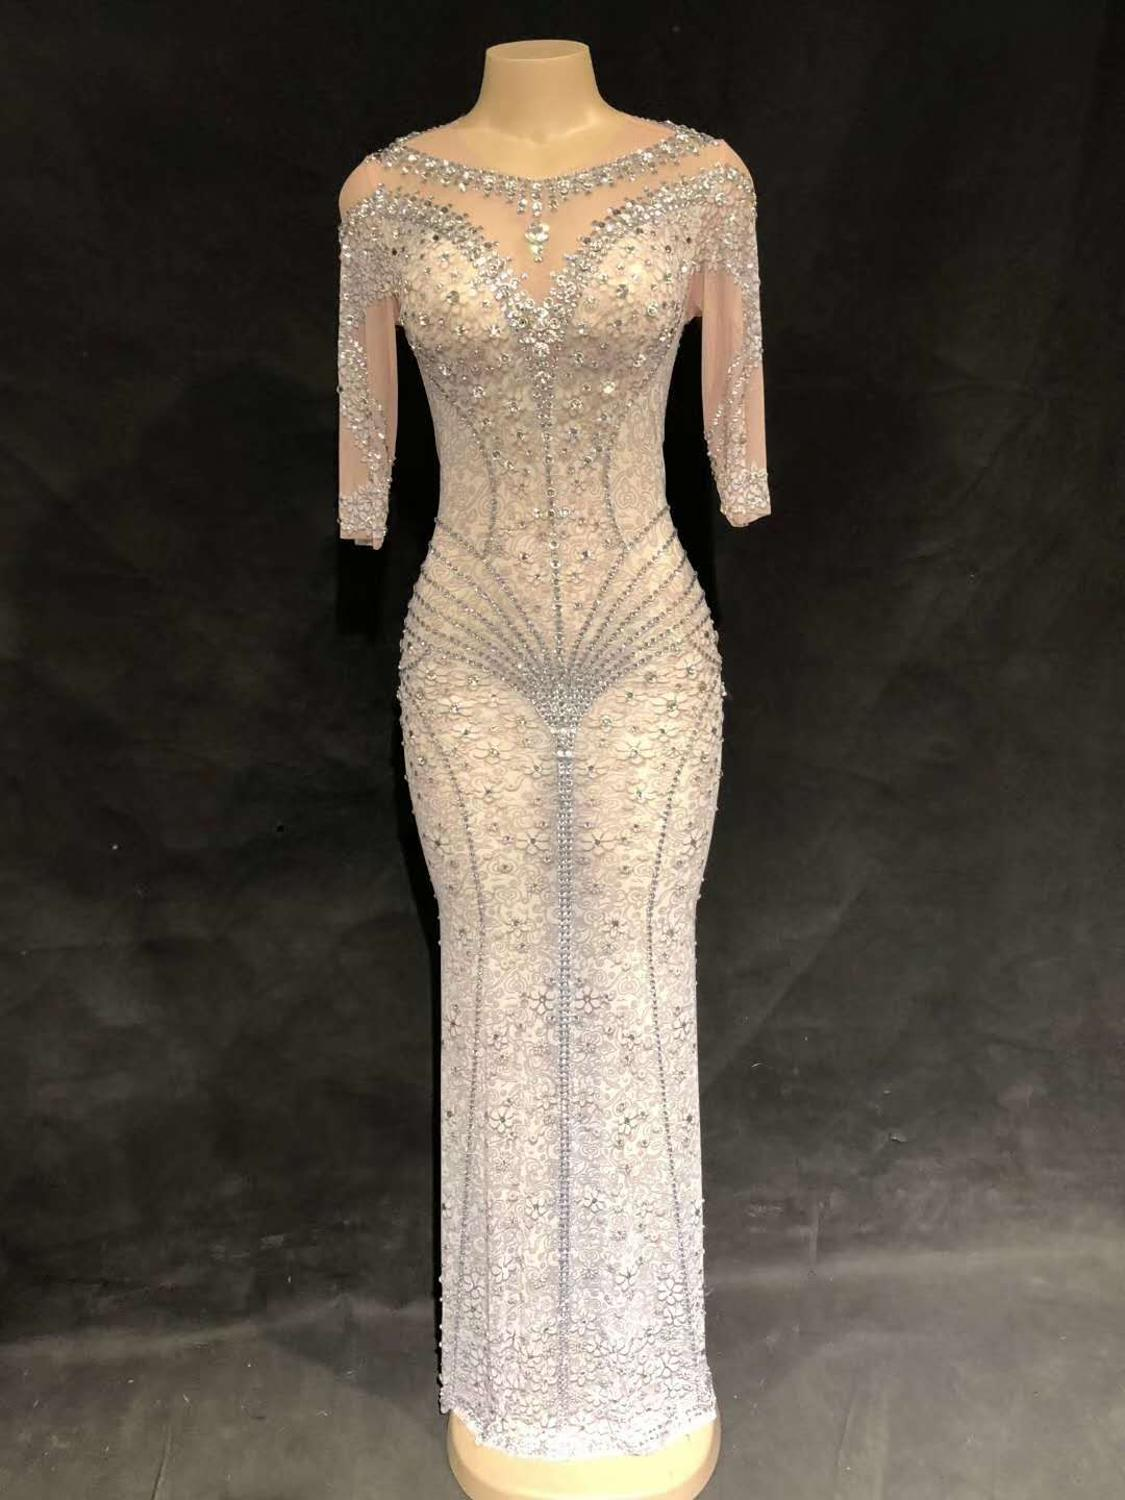 High Quality Silver Mesh Beading Nightclub Party Dress High Elasticity Dress Dancer Costumes